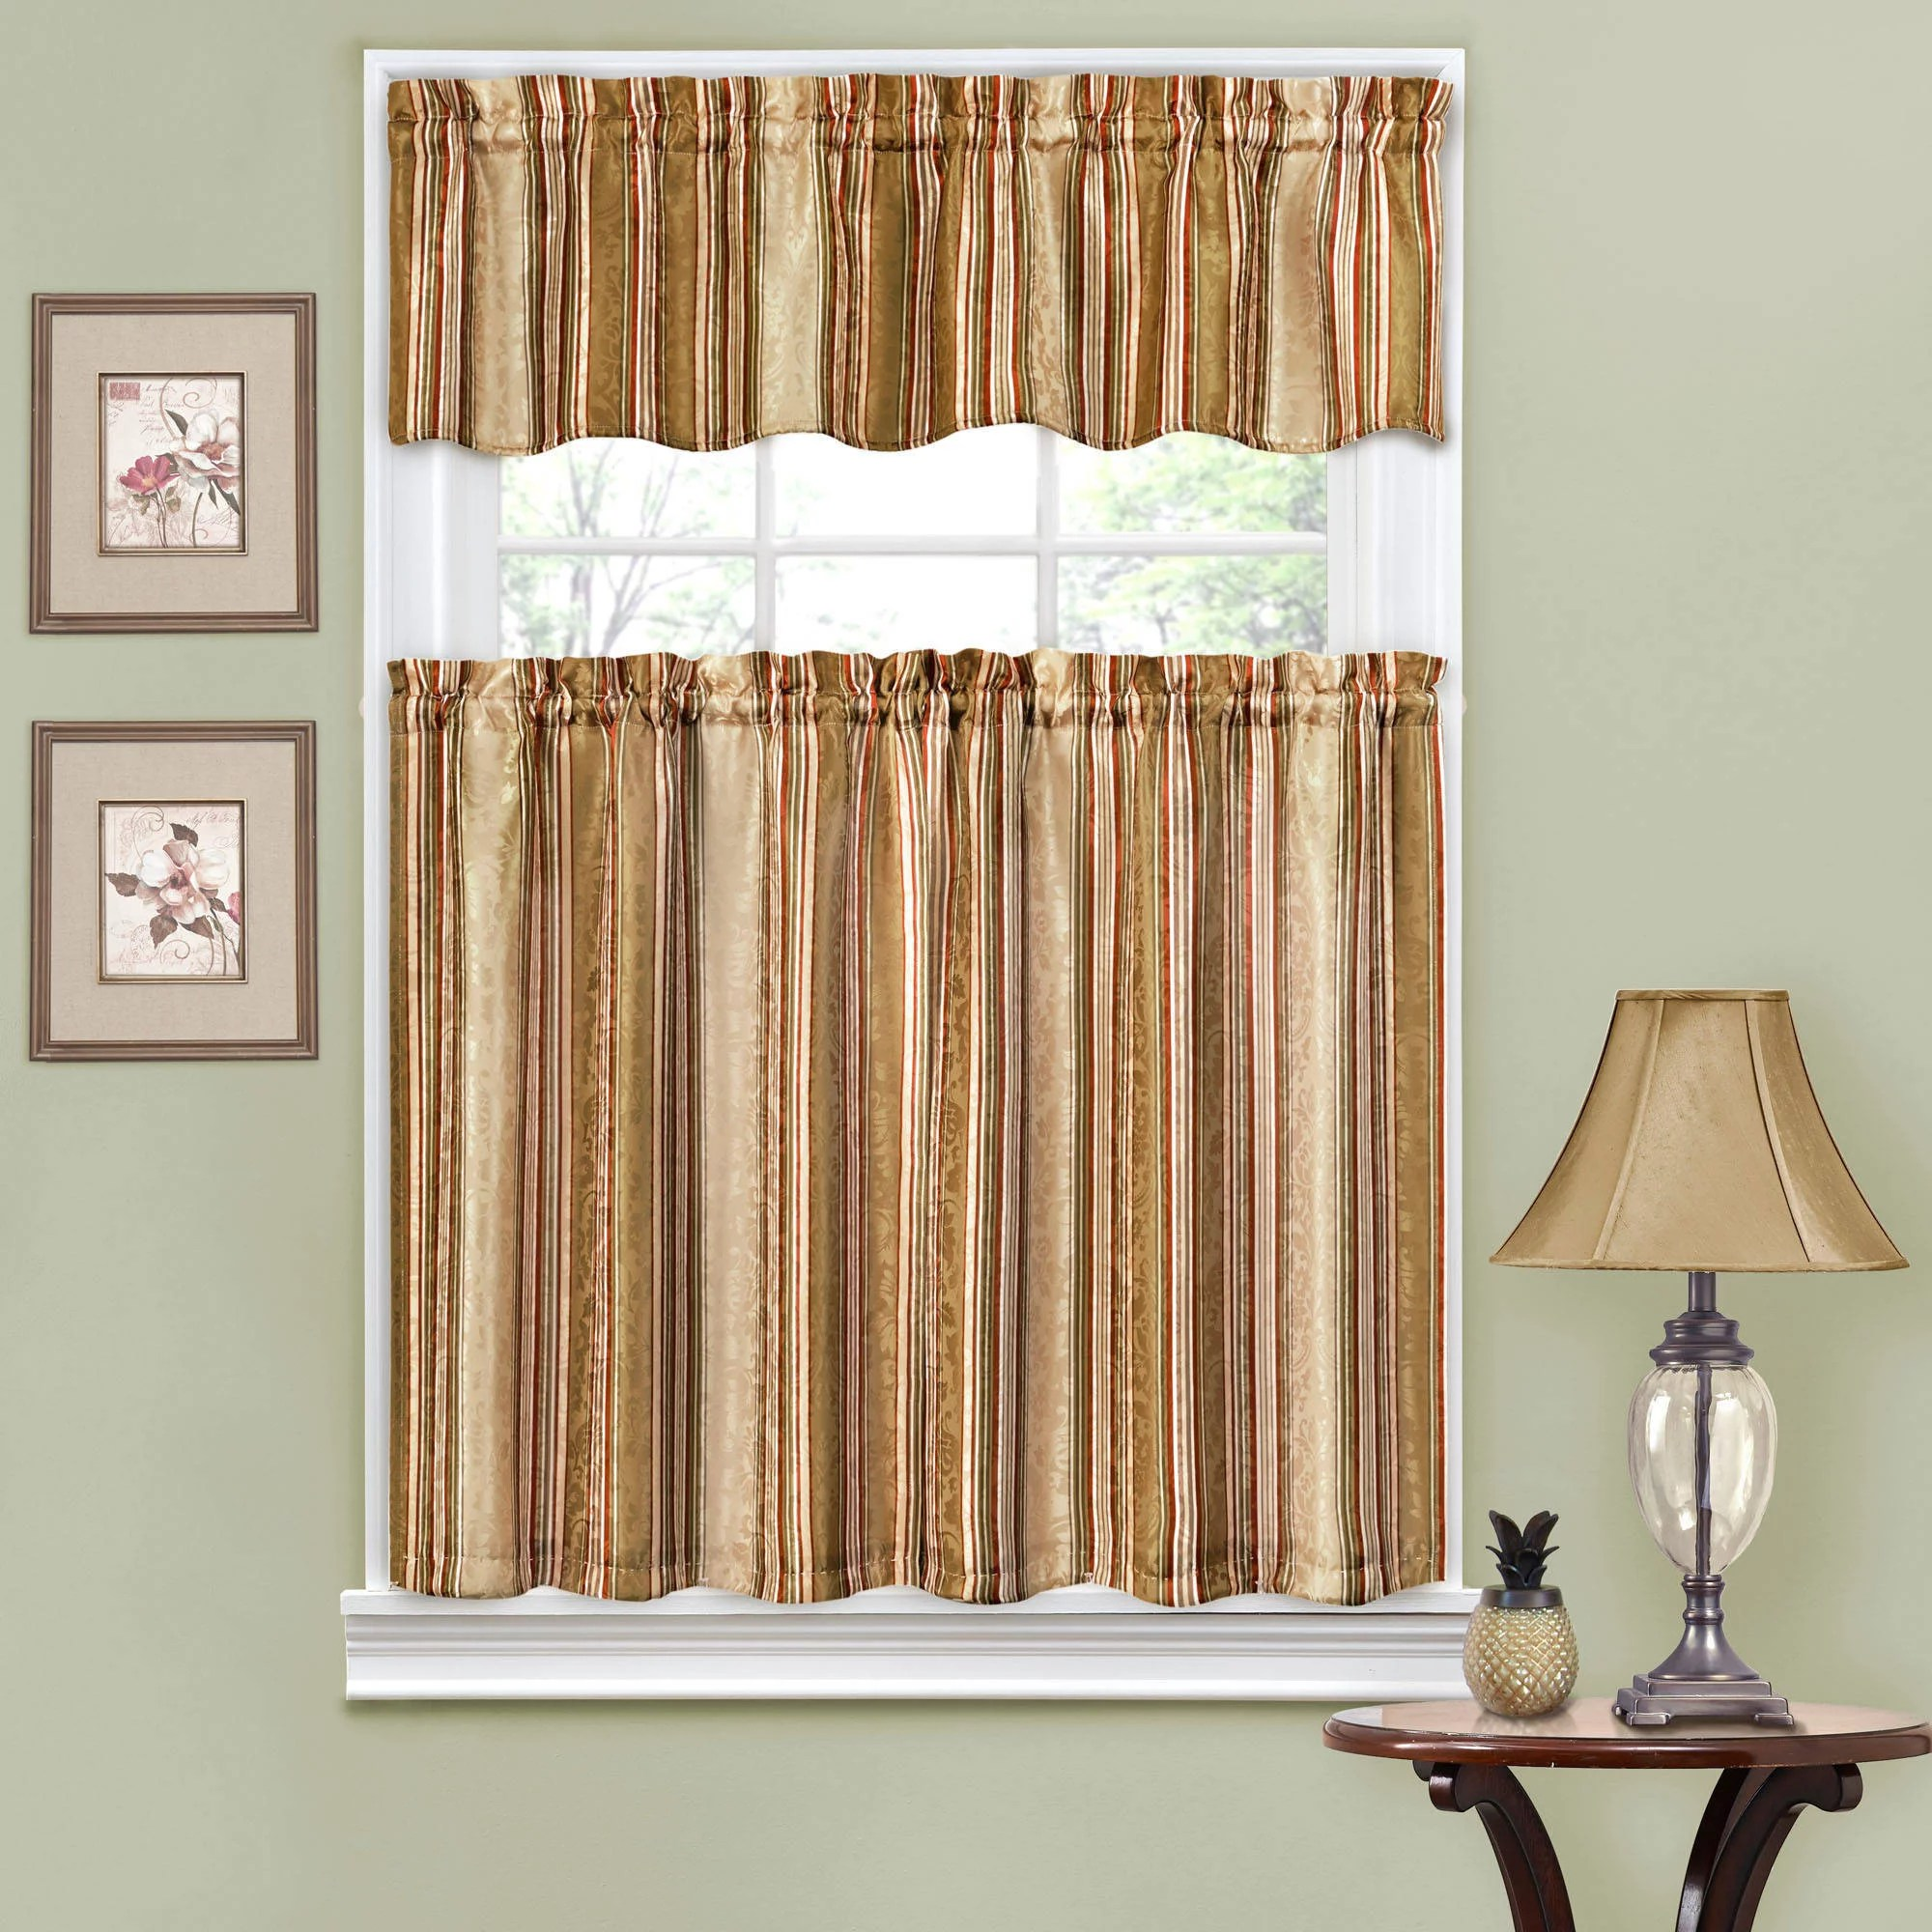 Fleetwood Kitchen Curtains Set Of 2 With Valence